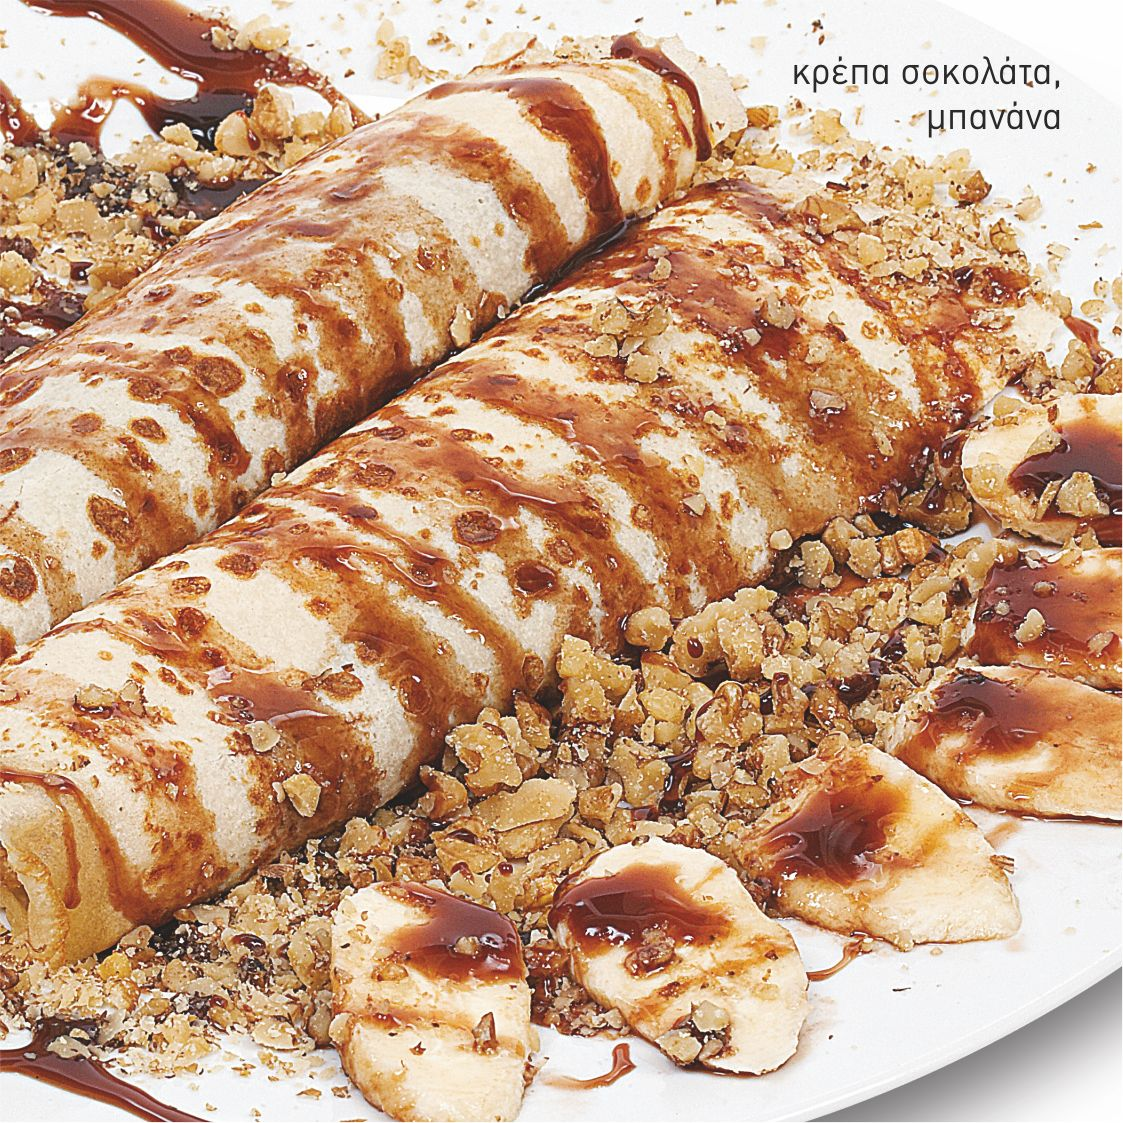 banana, chocolate & biscuit  crepe